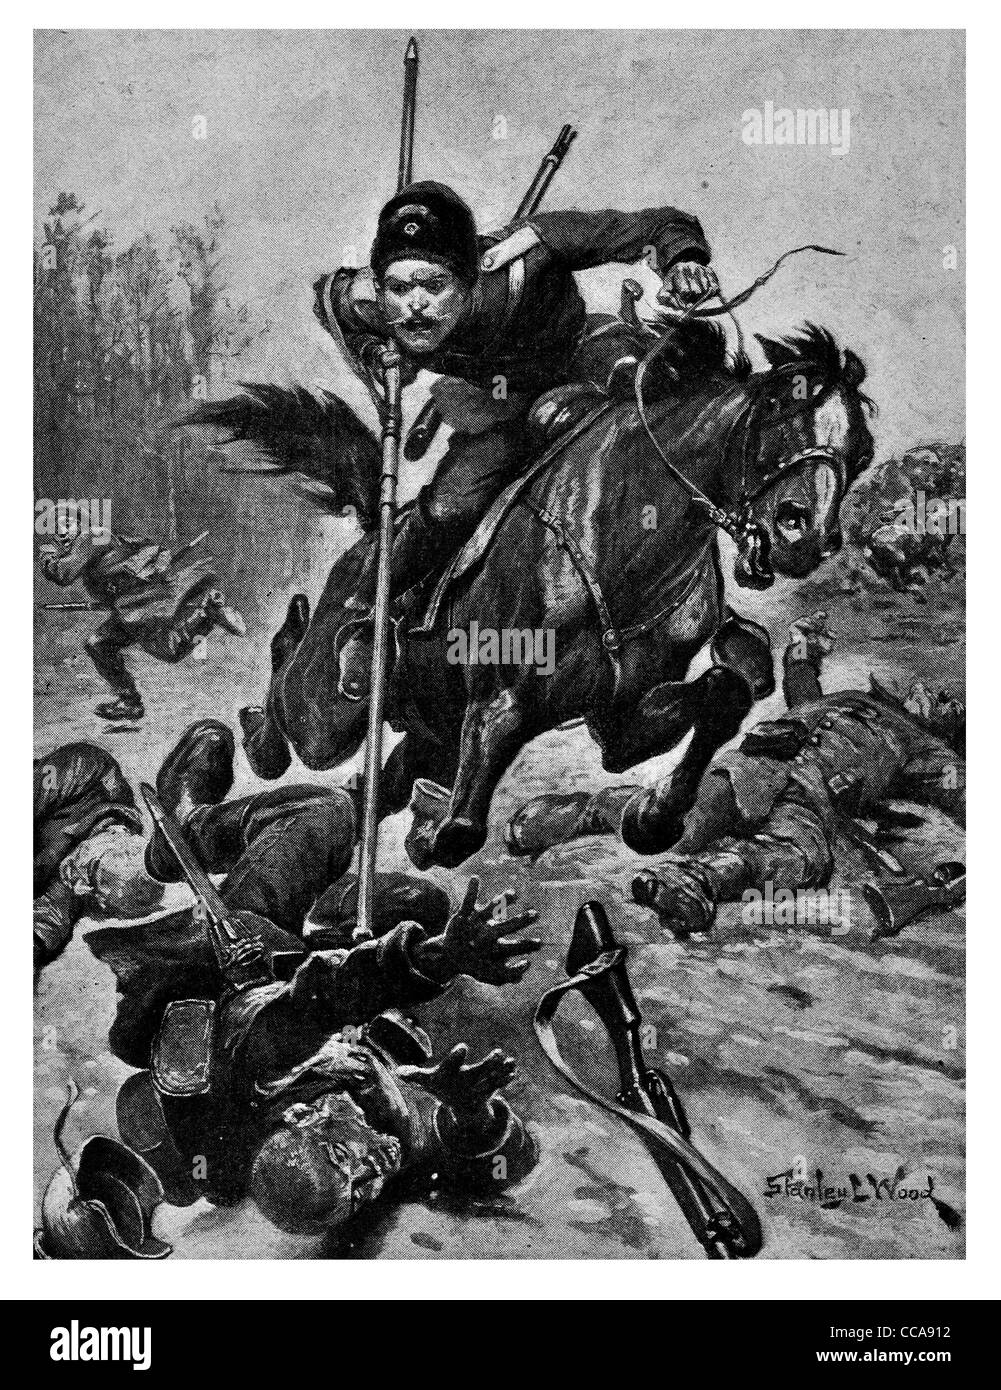 1915 Russian Cossack Kirianoff charged killed 11 German by lance sword saber cavalry mounted horse riding rider - Stock Image